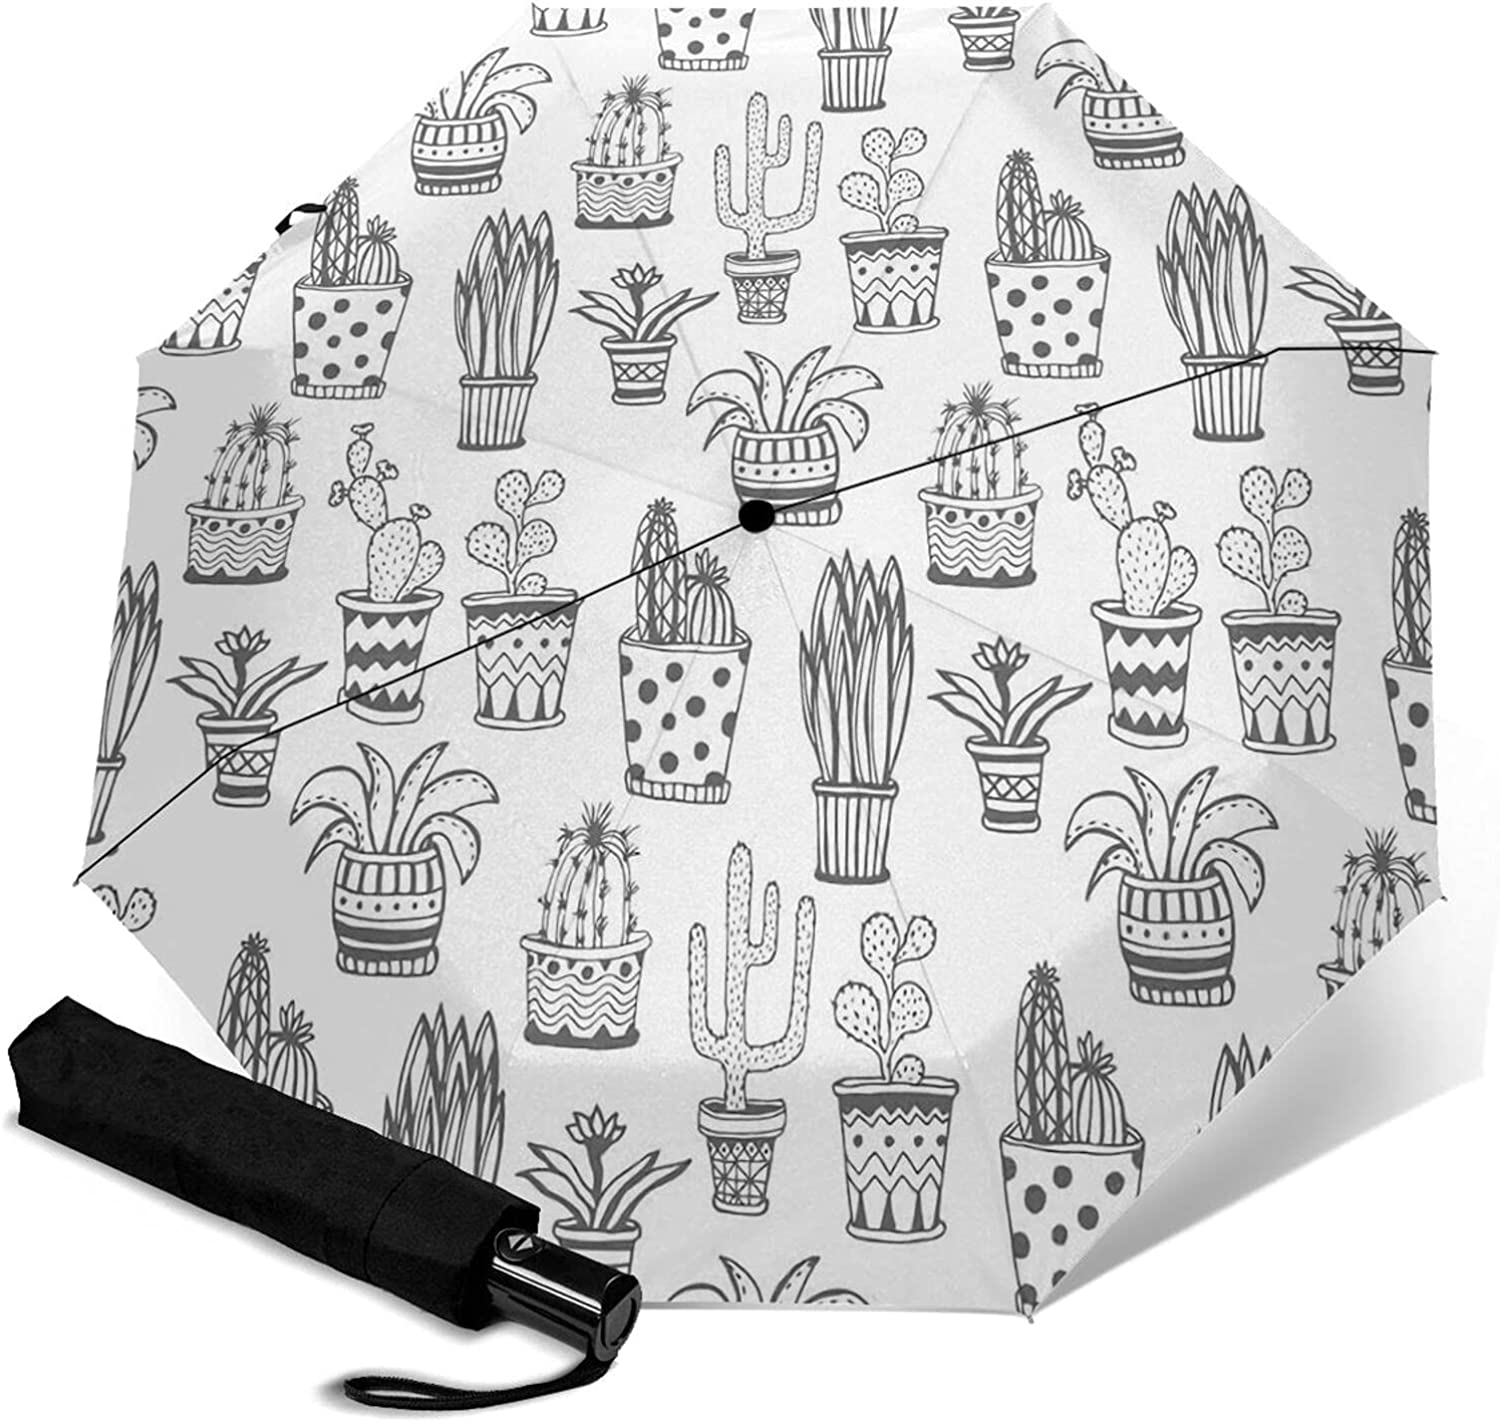 Cactus Be super welcome Plants Shipping included Print Automatic Three-Folding Waterproof Umbrella